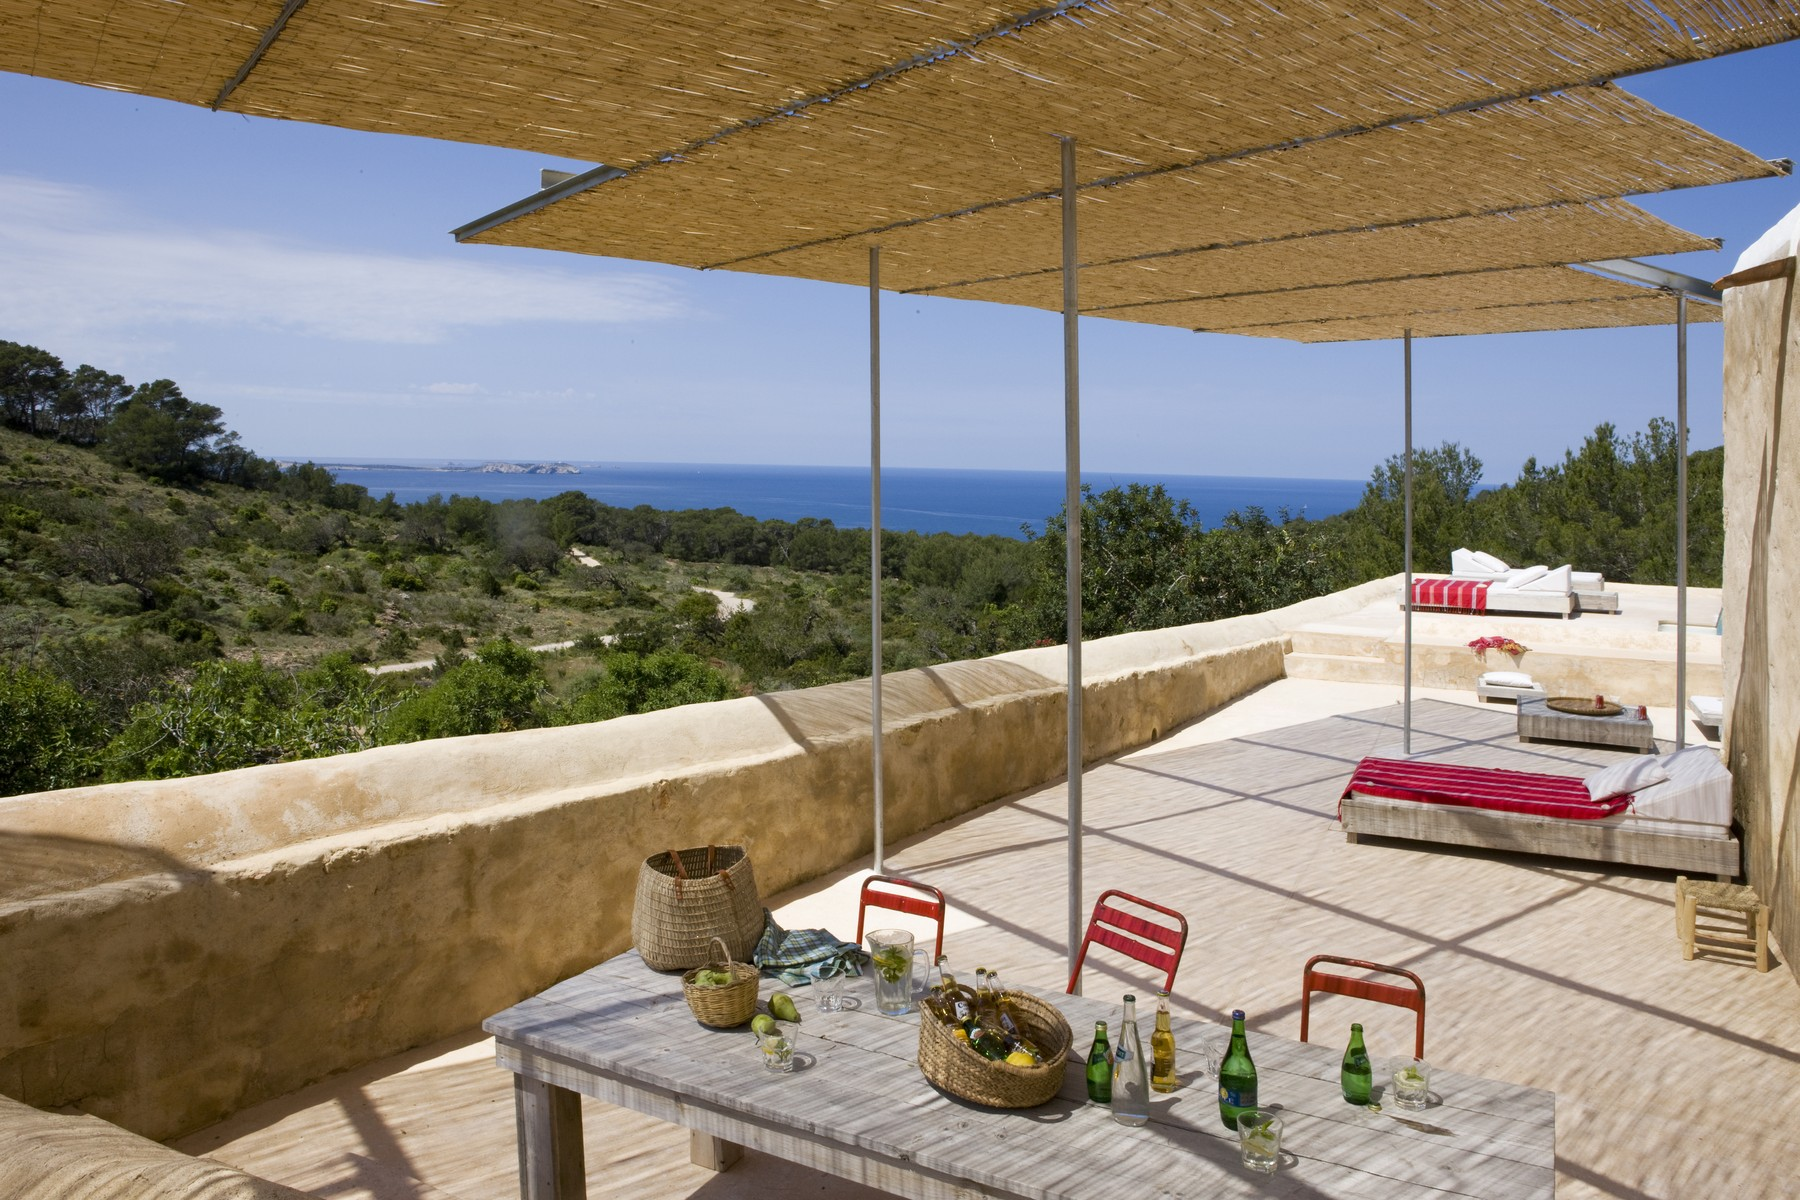 Casa Unifamiliar por un Venta en Old Ibizan Jewel With Open Sea Views And Sunset San Antonio Abad, Mallorca, 07820 España